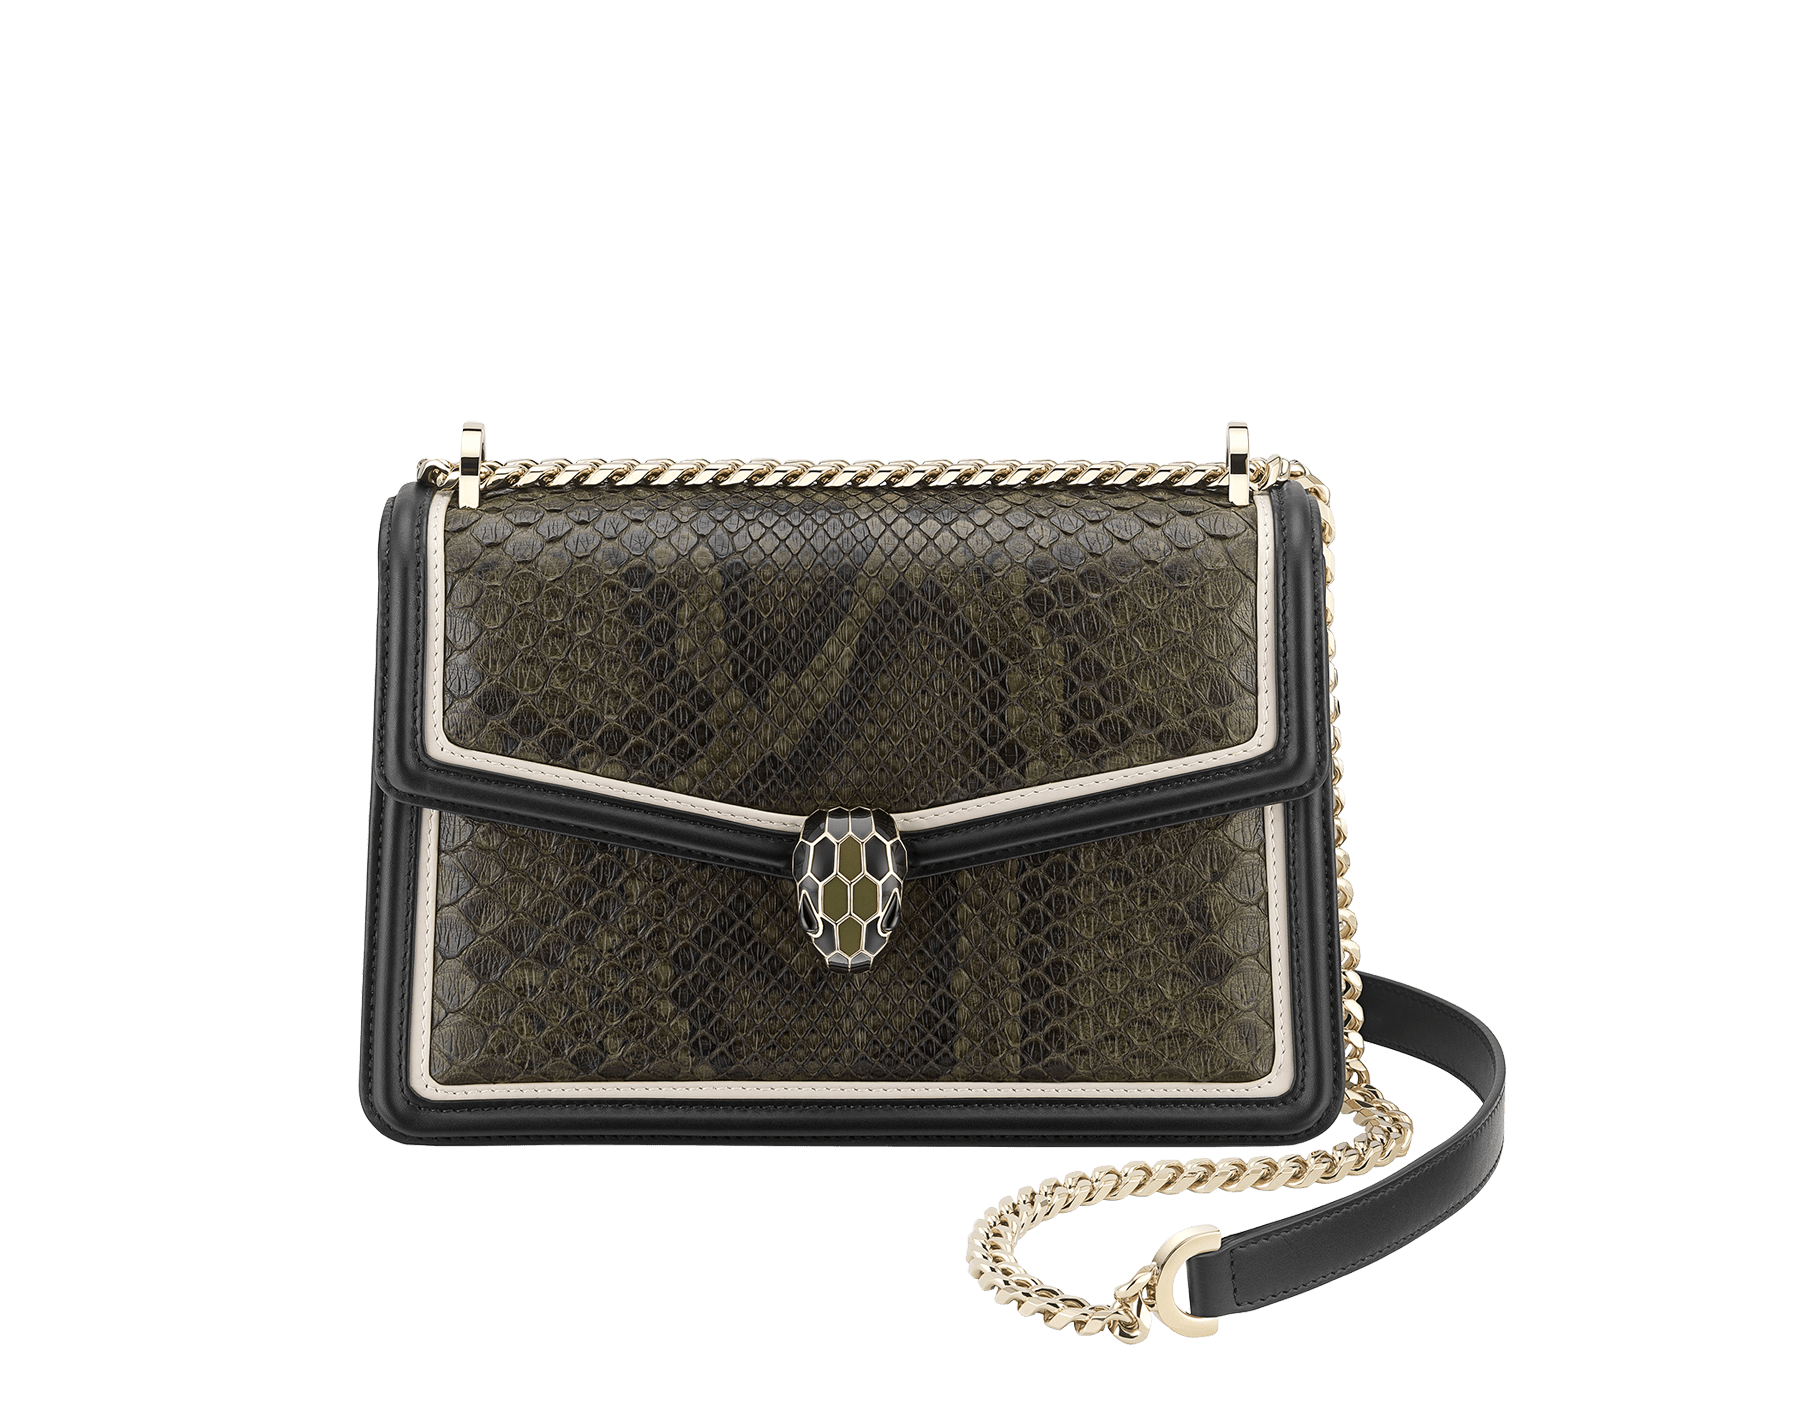 """Serpenti Diamond Blast"" shoulder bag in mimetic jade ""Pure"" python skin and black smooth calf leather frames. Iconic snakehead closure in light gold plated brass enriched with matte black and shiny mimetic jade enamel and black onyx eyes. 290037 image 1"